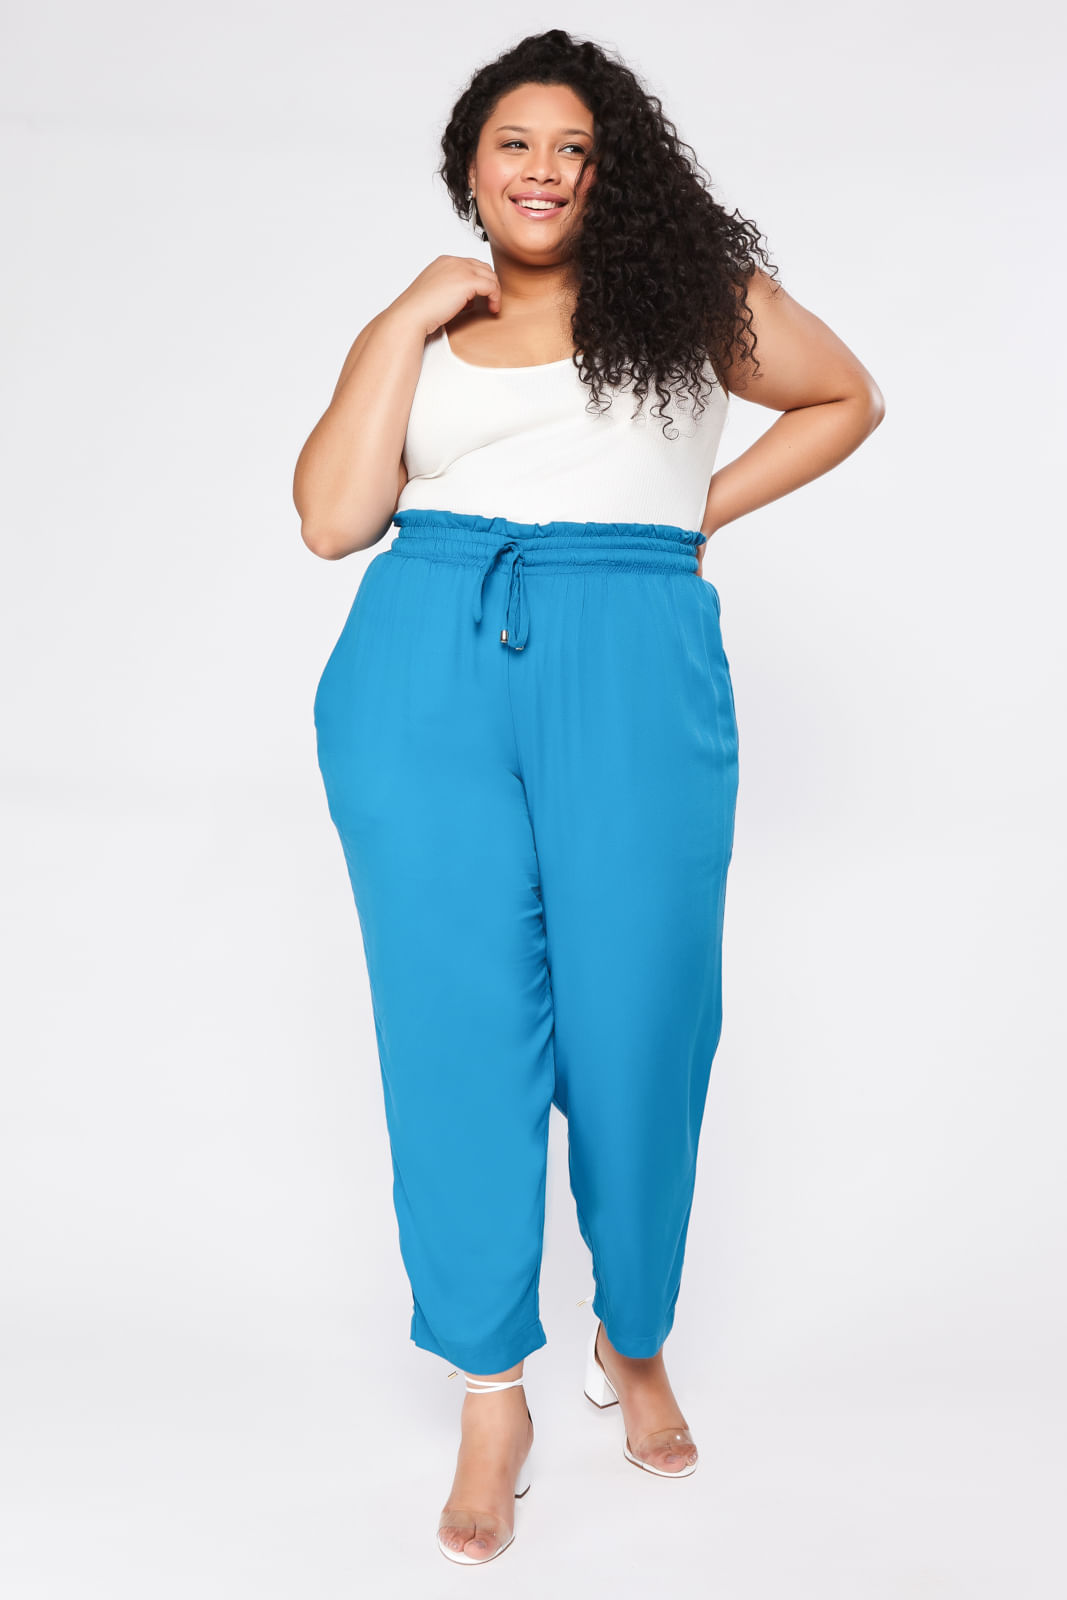 T087.4_Calca_Plus_Size_Viscose_Azul_1